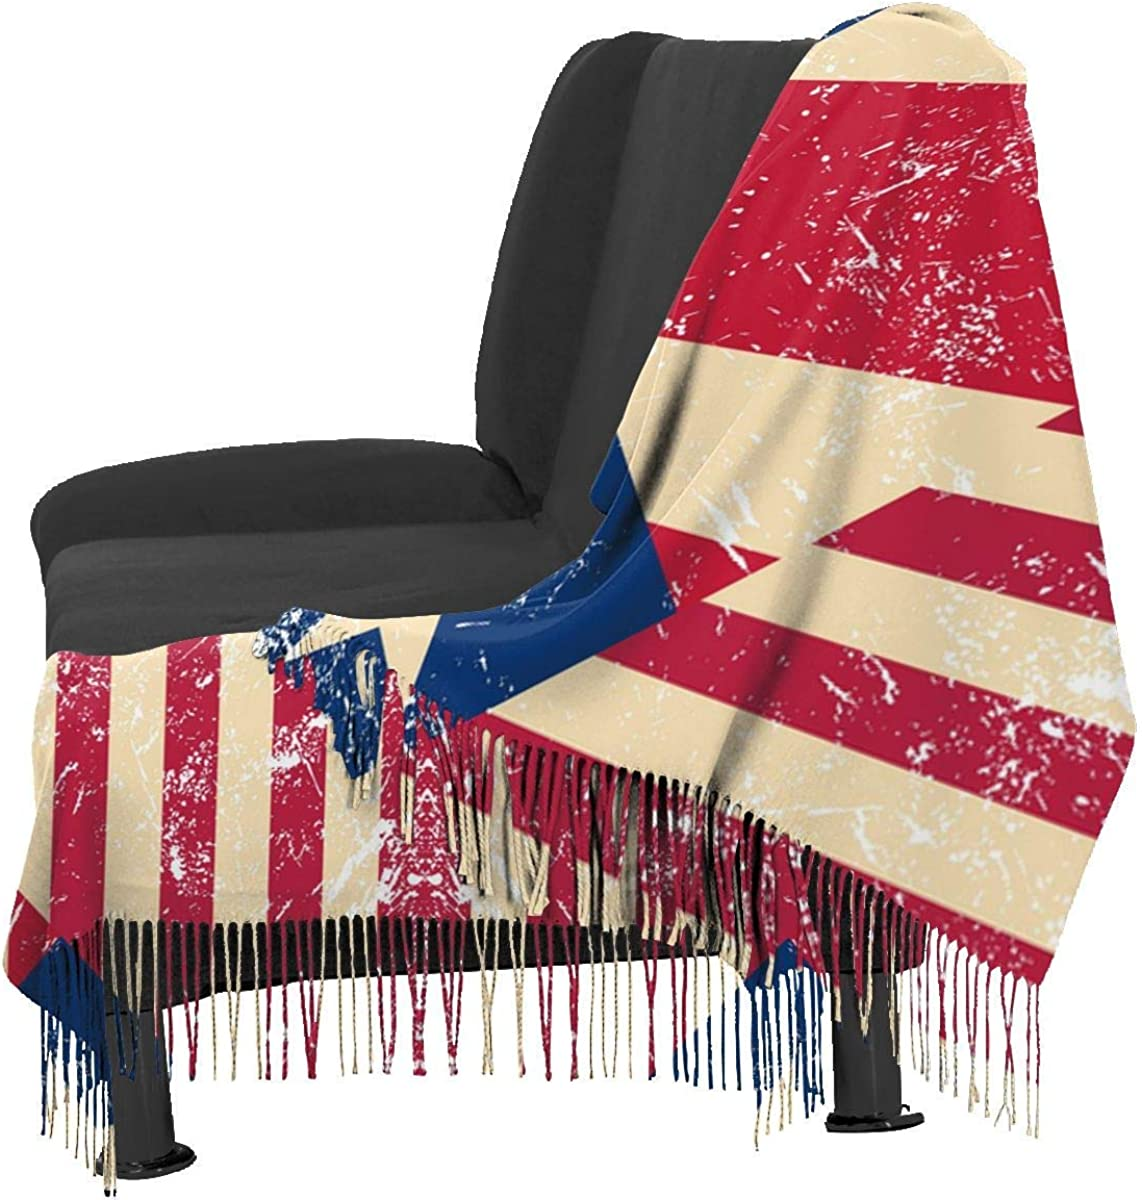 American and Puerto Rico Retro Flag Cashmere Scarf Shawl Wraps Super Soft Warm Tassel Scarves For Women Office Worker Travel